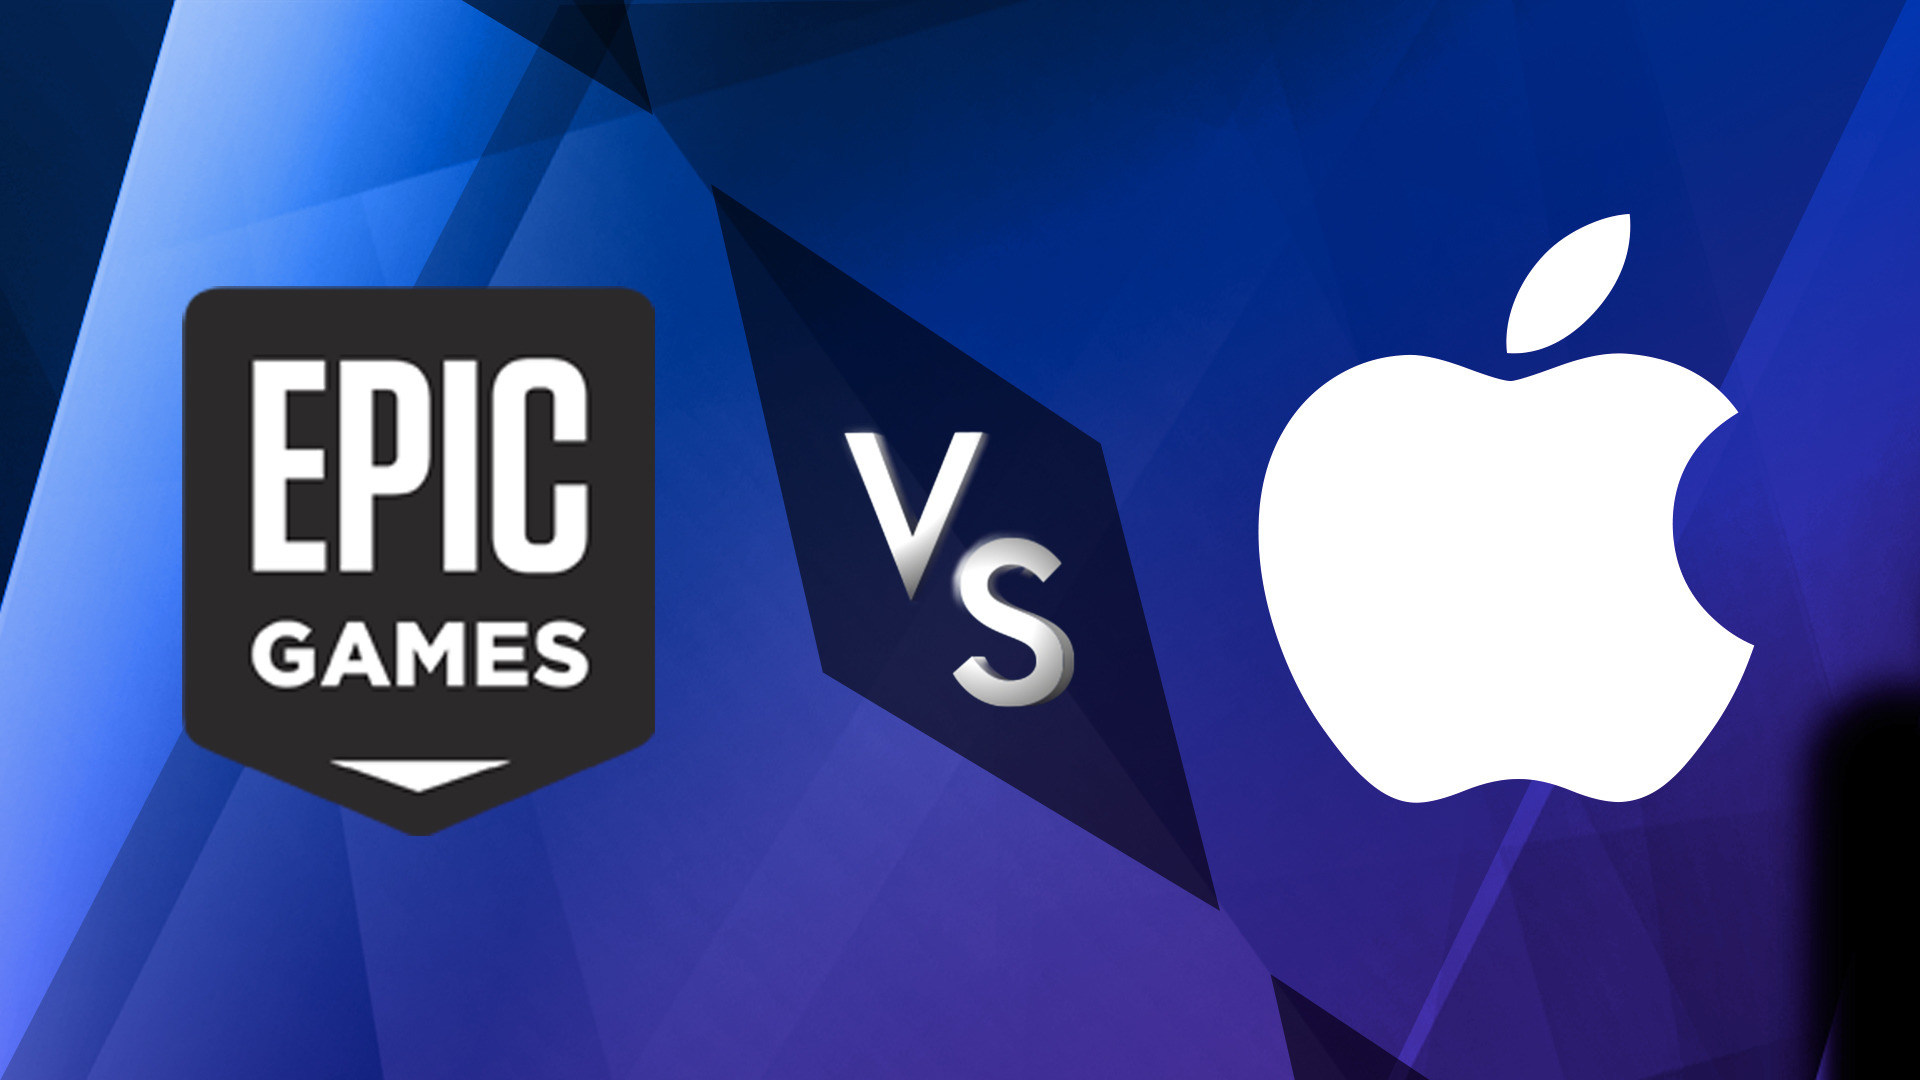 Apple, Epic Games, Fortnite, Epic Games Store, Epic, Games Store, Epic vs Apple, Apple vs Epic